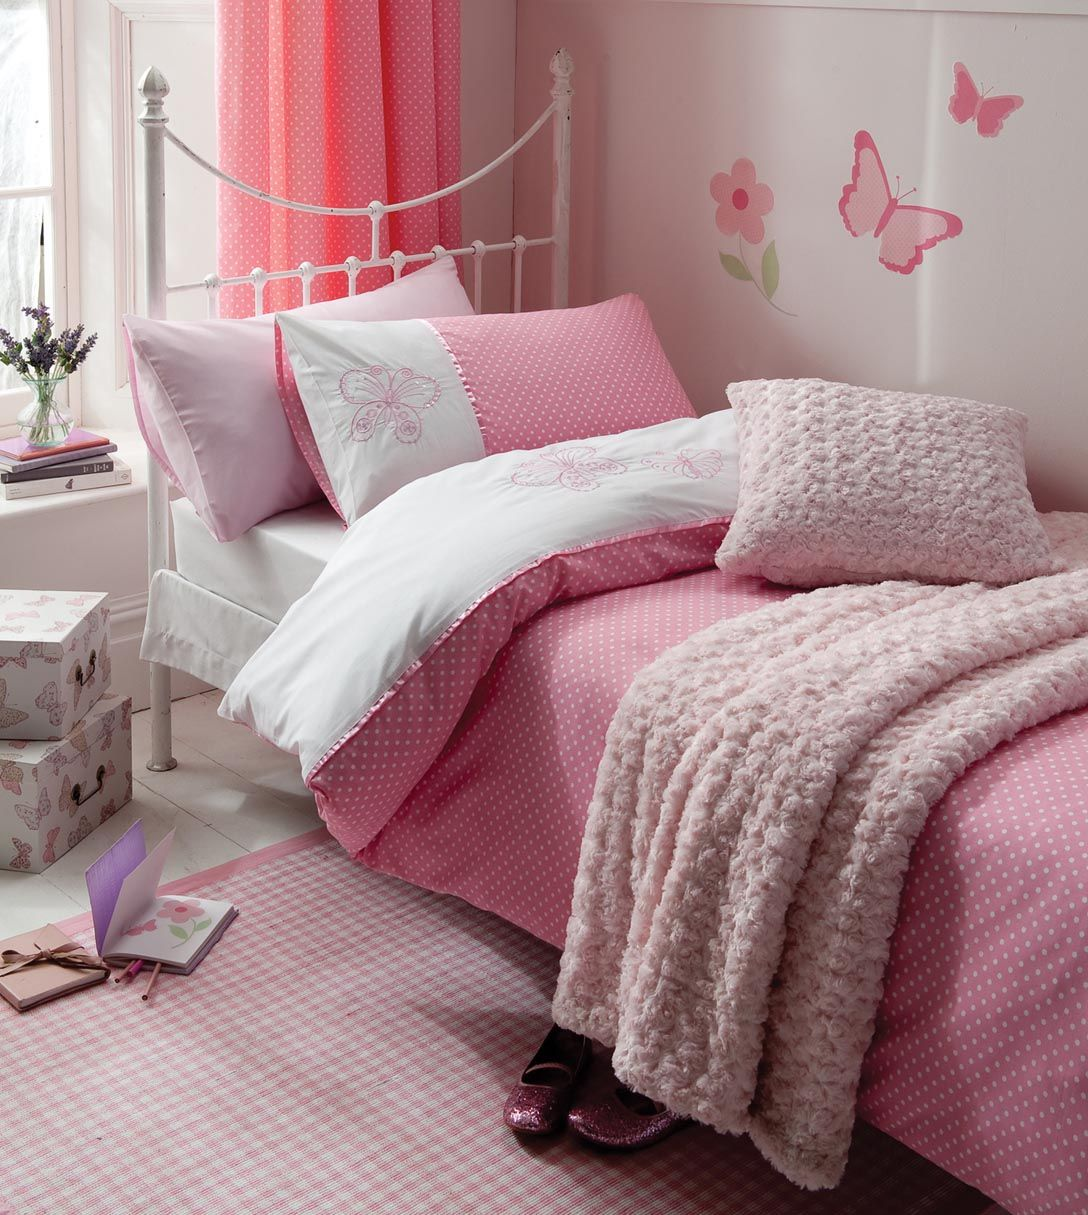 Pink and white polka dot bedding - Pink Flutterbye Girls Bedding Single Double Duvet Pink Polka Dot Curtains Curly Fur Throw